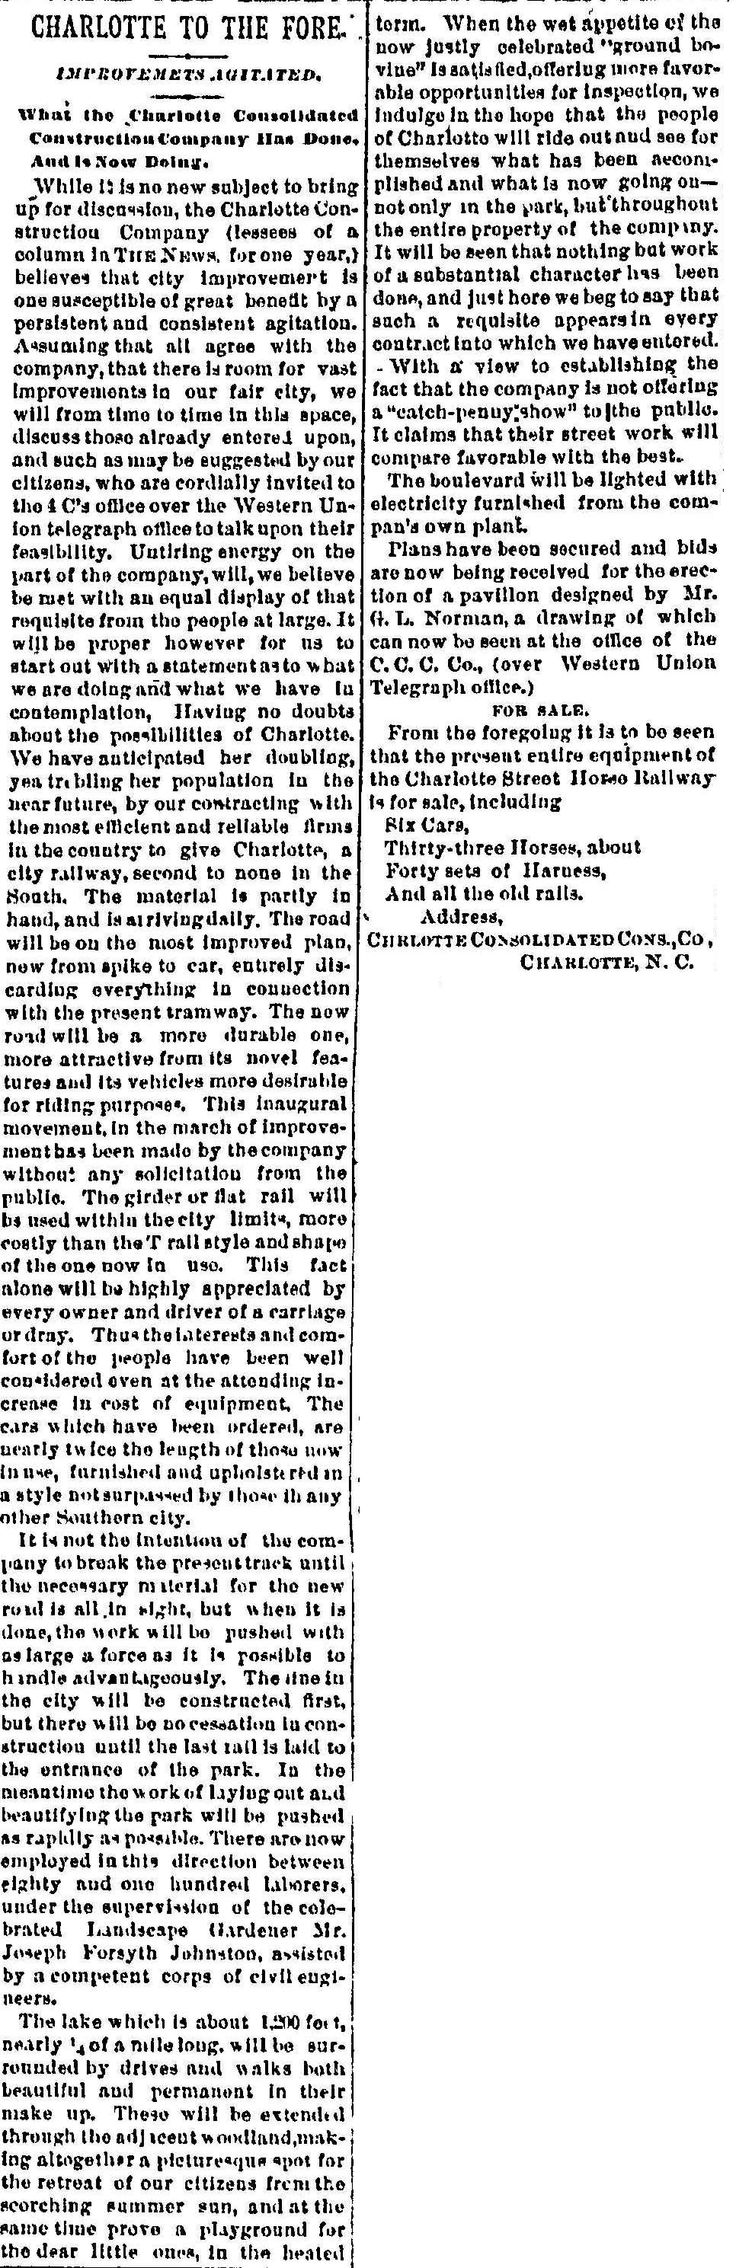 """Charlotte News, March 14, 1891 - """"Charlotte to the Fore,"""" Construction of the streetcar line to Latta Park and the new Dilworth development is underway; the 4C's are selling the old horse-drawn cars as well."""